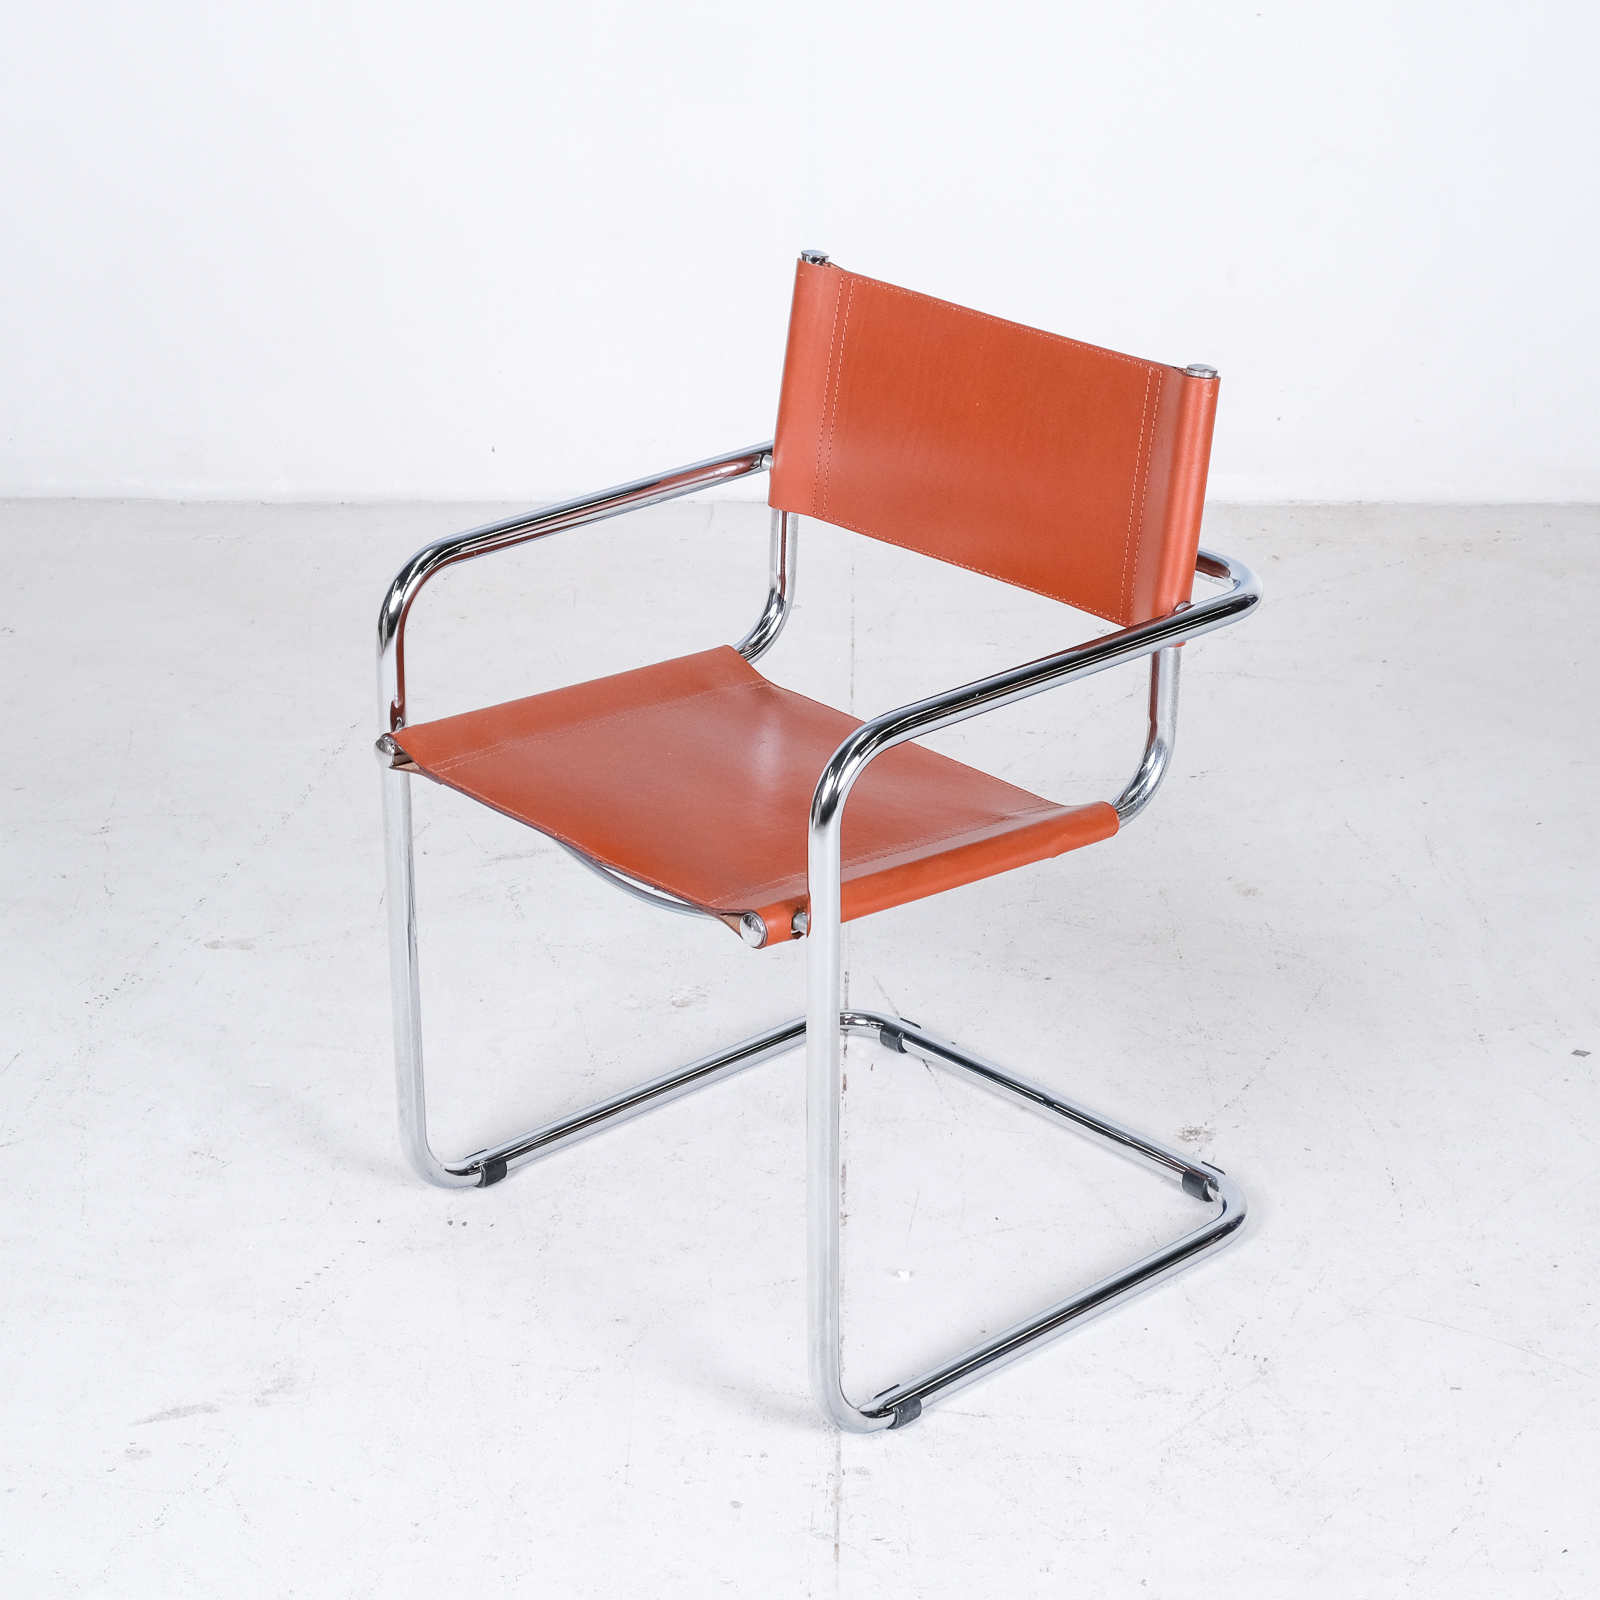 Set Of 4 Model S34 Cantilever Chairs In Cognac Leather By Mart Stam For Thonet, 1980s, Germany011